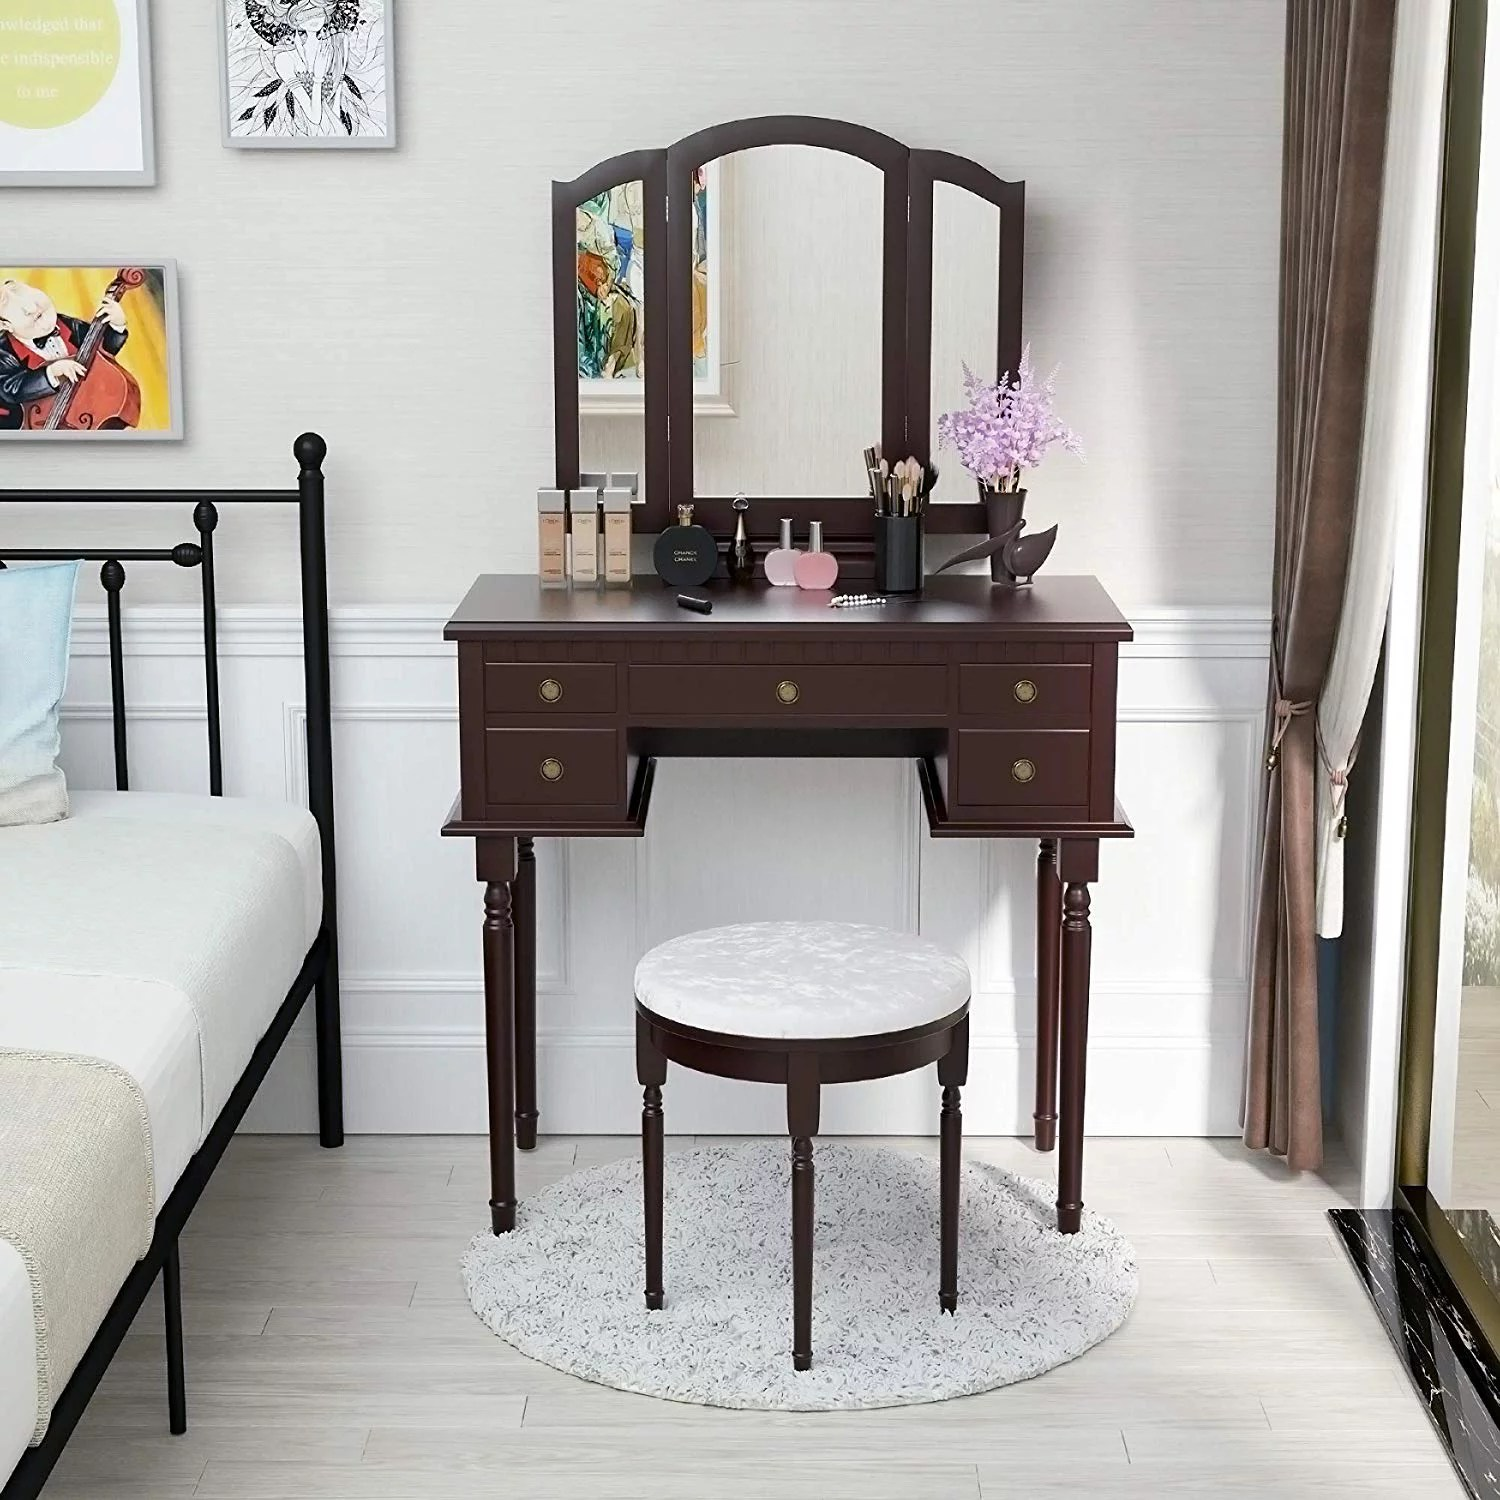 mecor vanity table set w tri folding mirror wood makeup table and round stool 5 drawers storage girls women bedroom furniture dressing table brown